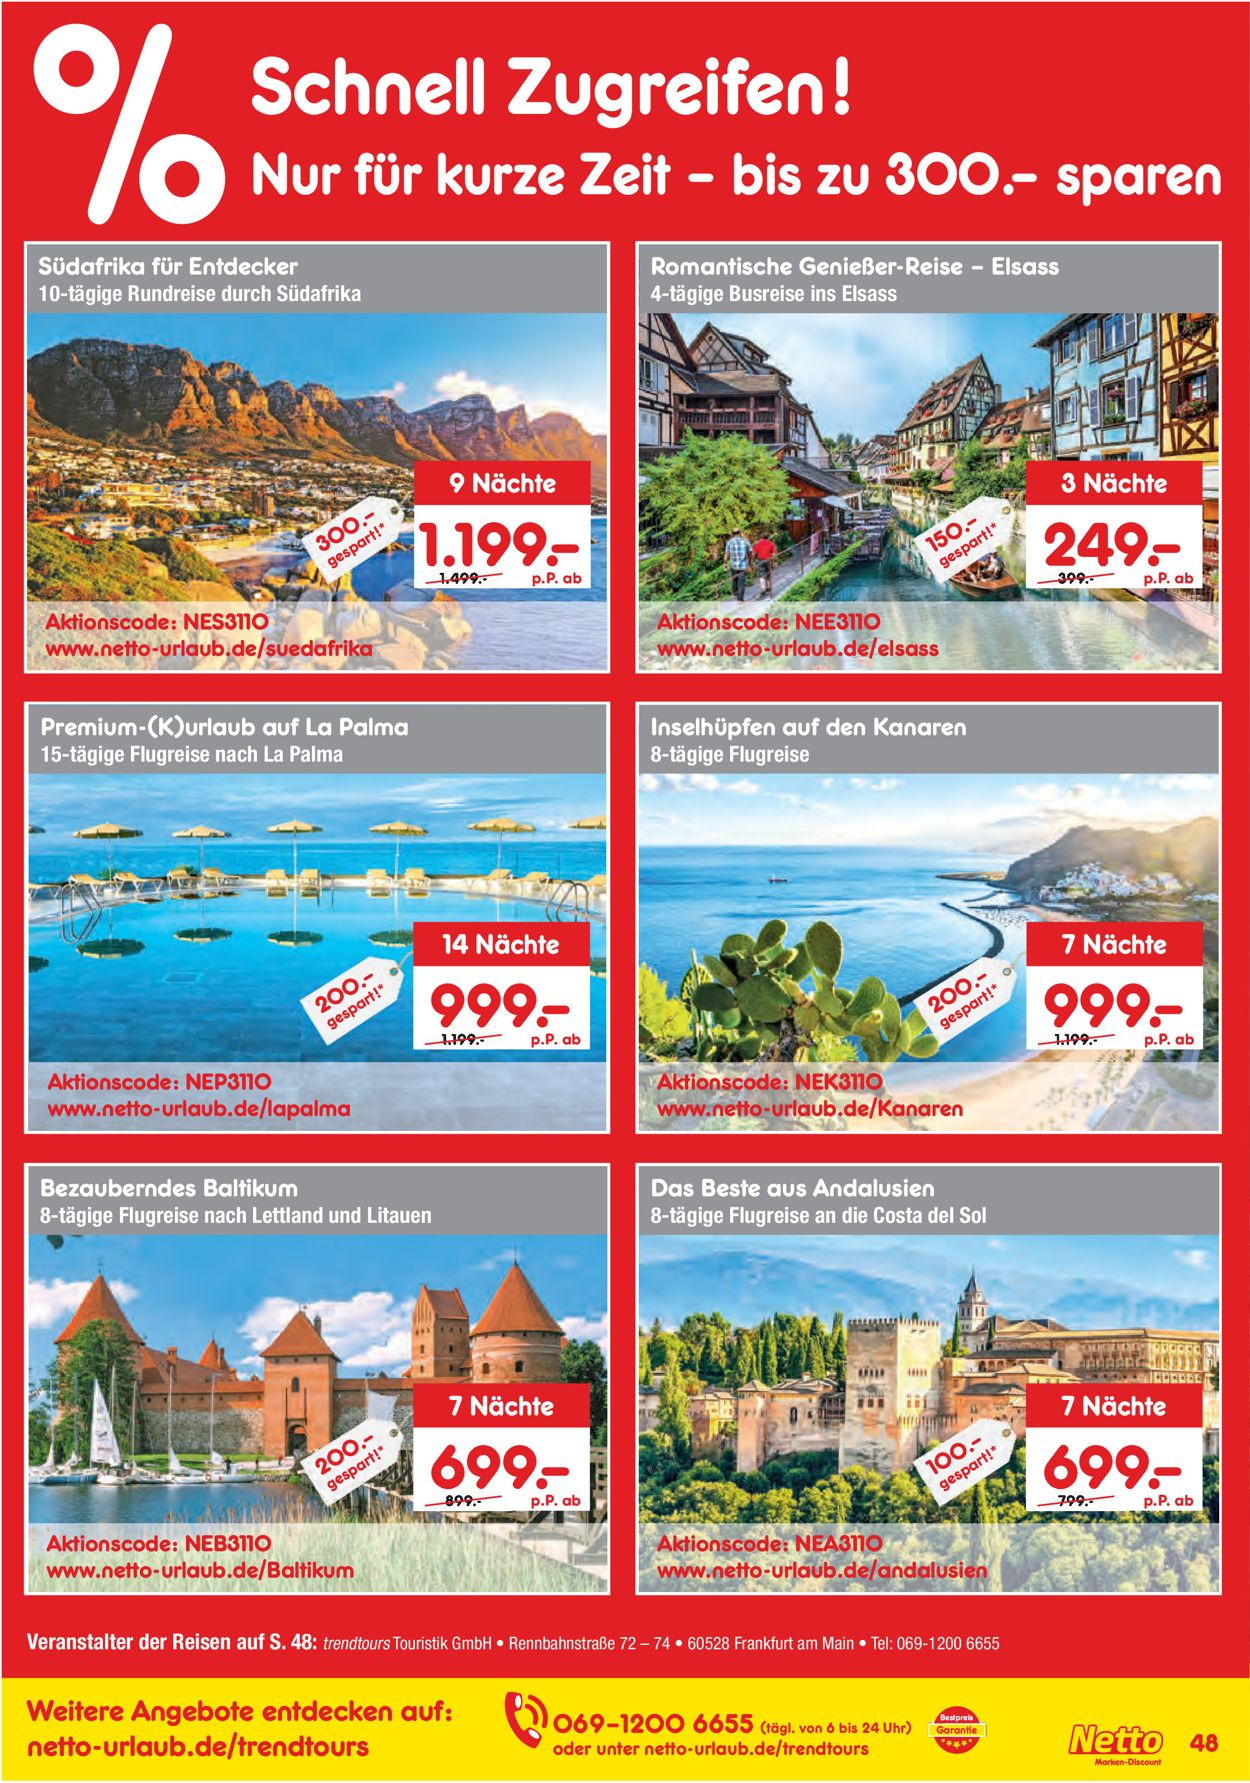 Trendtours andalusien 2019